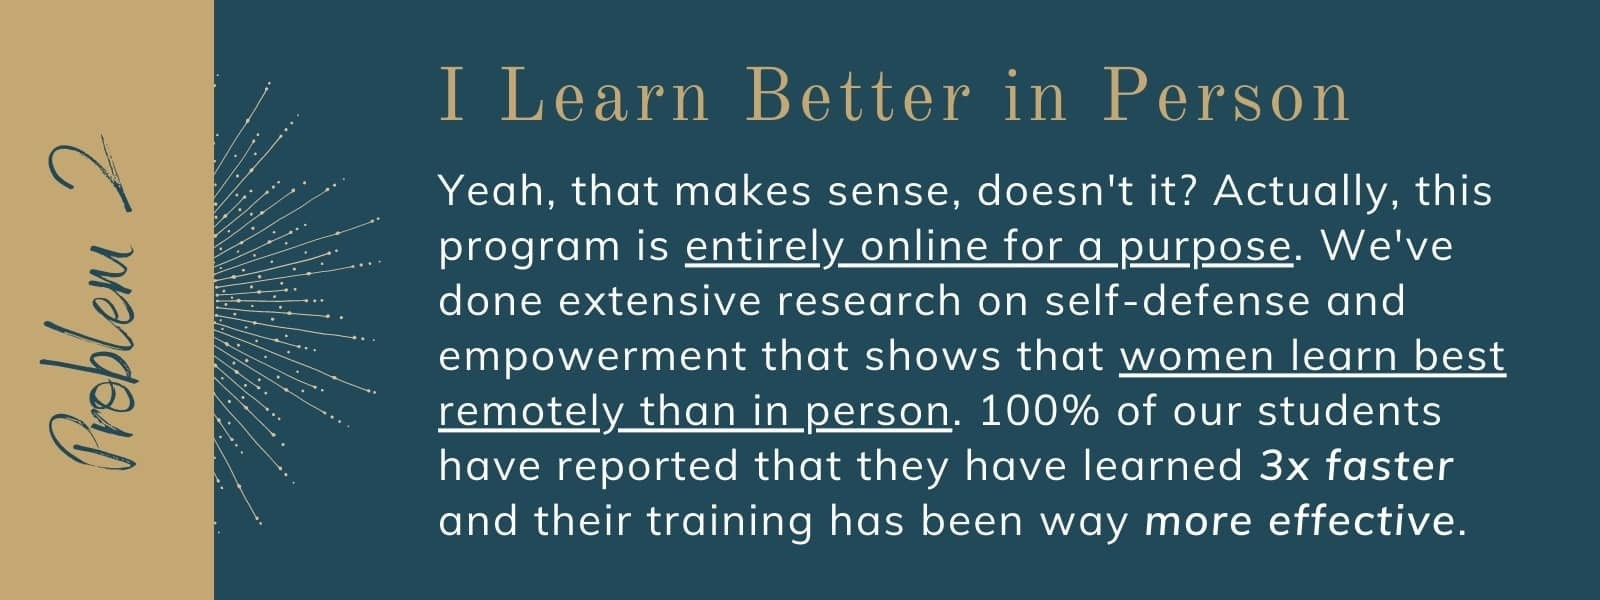 Yeah, that makes sense, doesn't it? Actually, this program is entirely online for a purpose. We've done extensive research on self-defense and empowerment that shows that women learn best remotely than in person. 100% of our students have reported that they have learned 3x faster and their training has been way more effective.